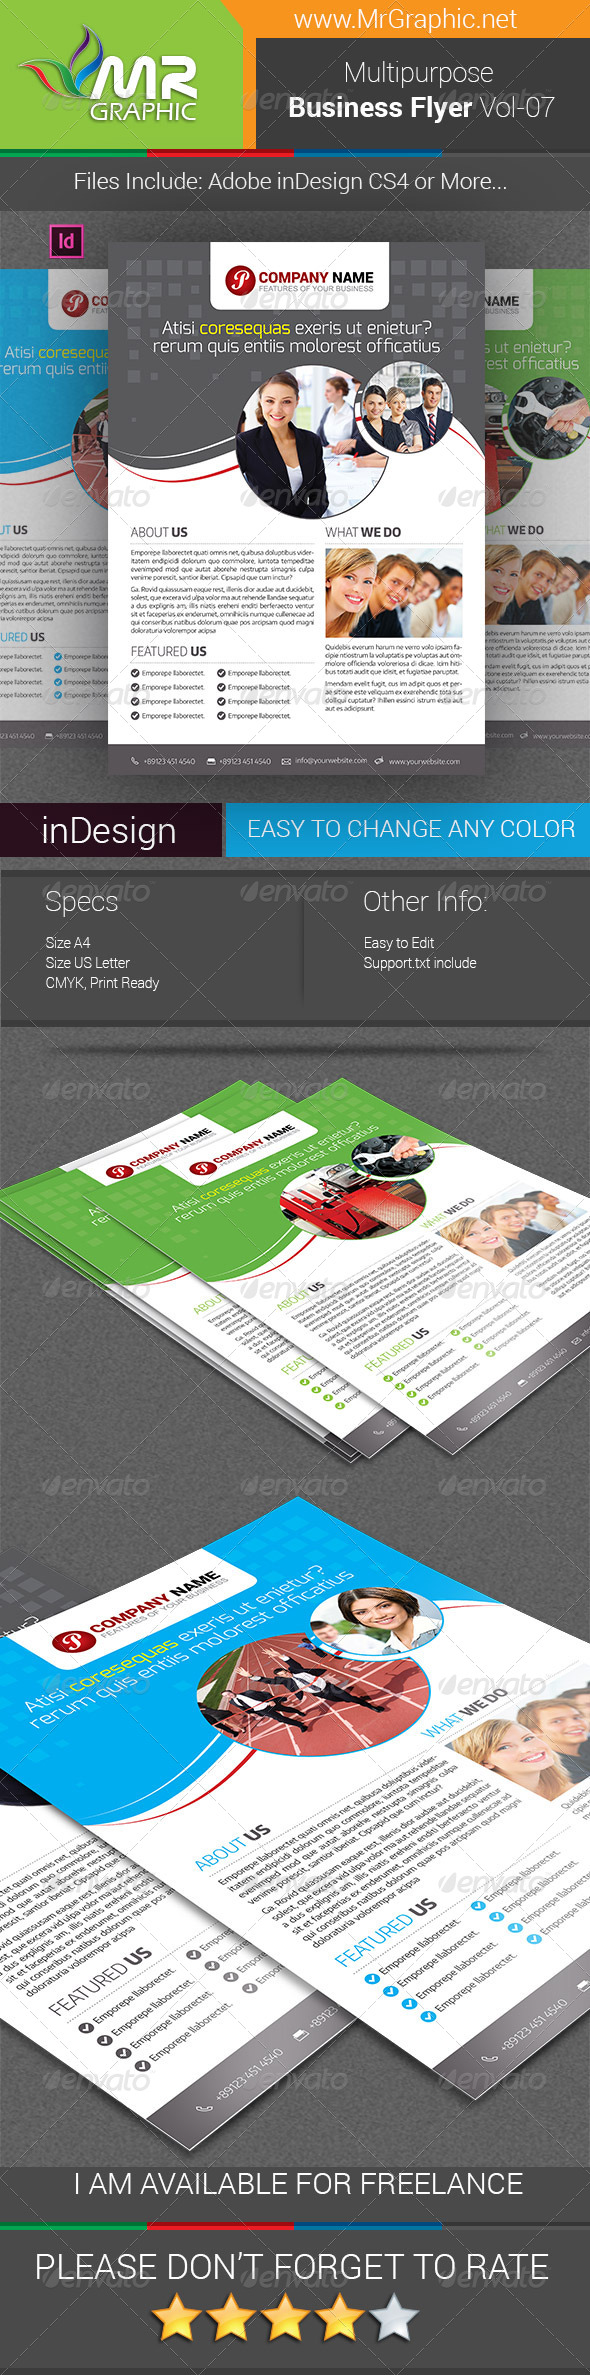 GraphicRiver Multipurpose Business Flyer Vol-07 7717978